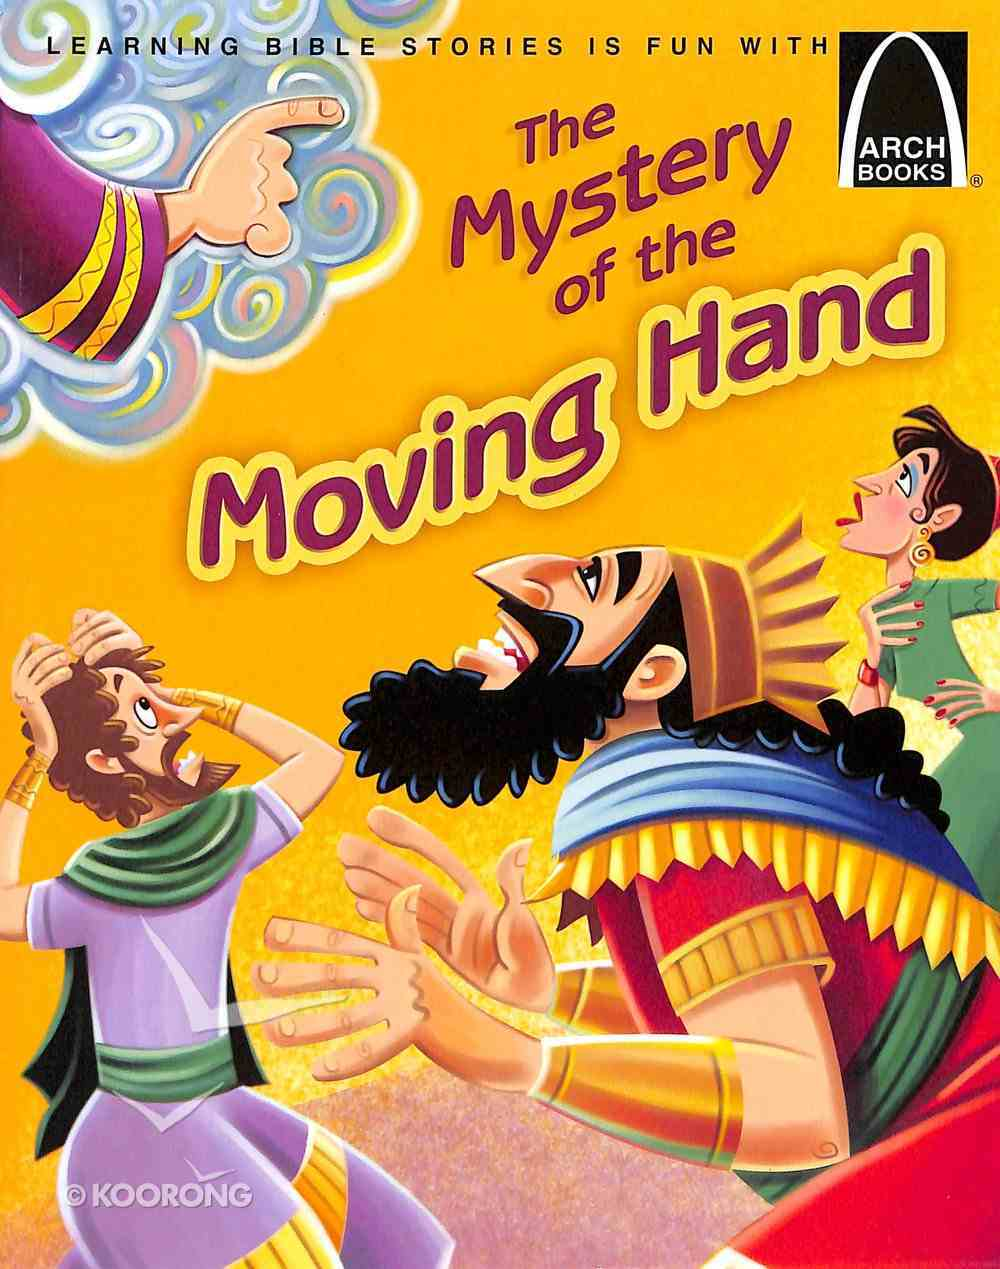 The Mystery of the Moving Hand (Arch Books Series) Paperback